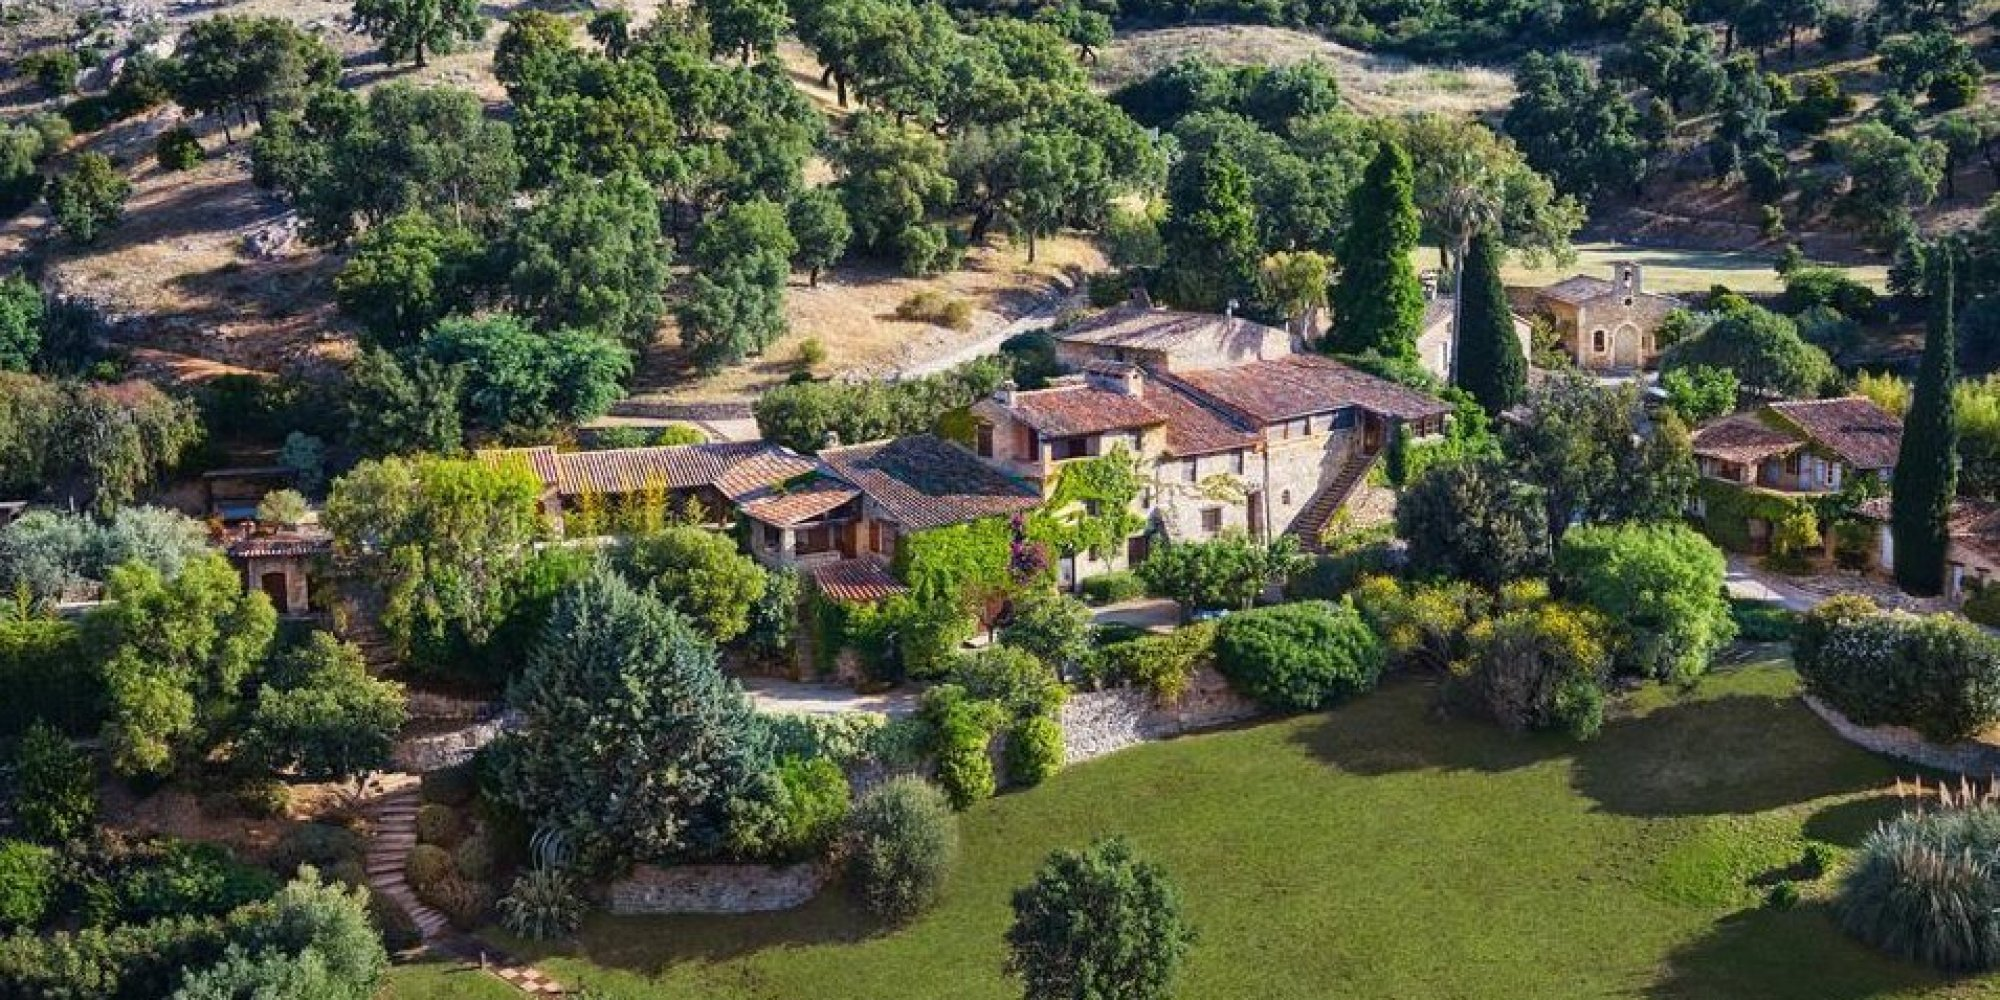 Depp's 37-acre property in the south of France.